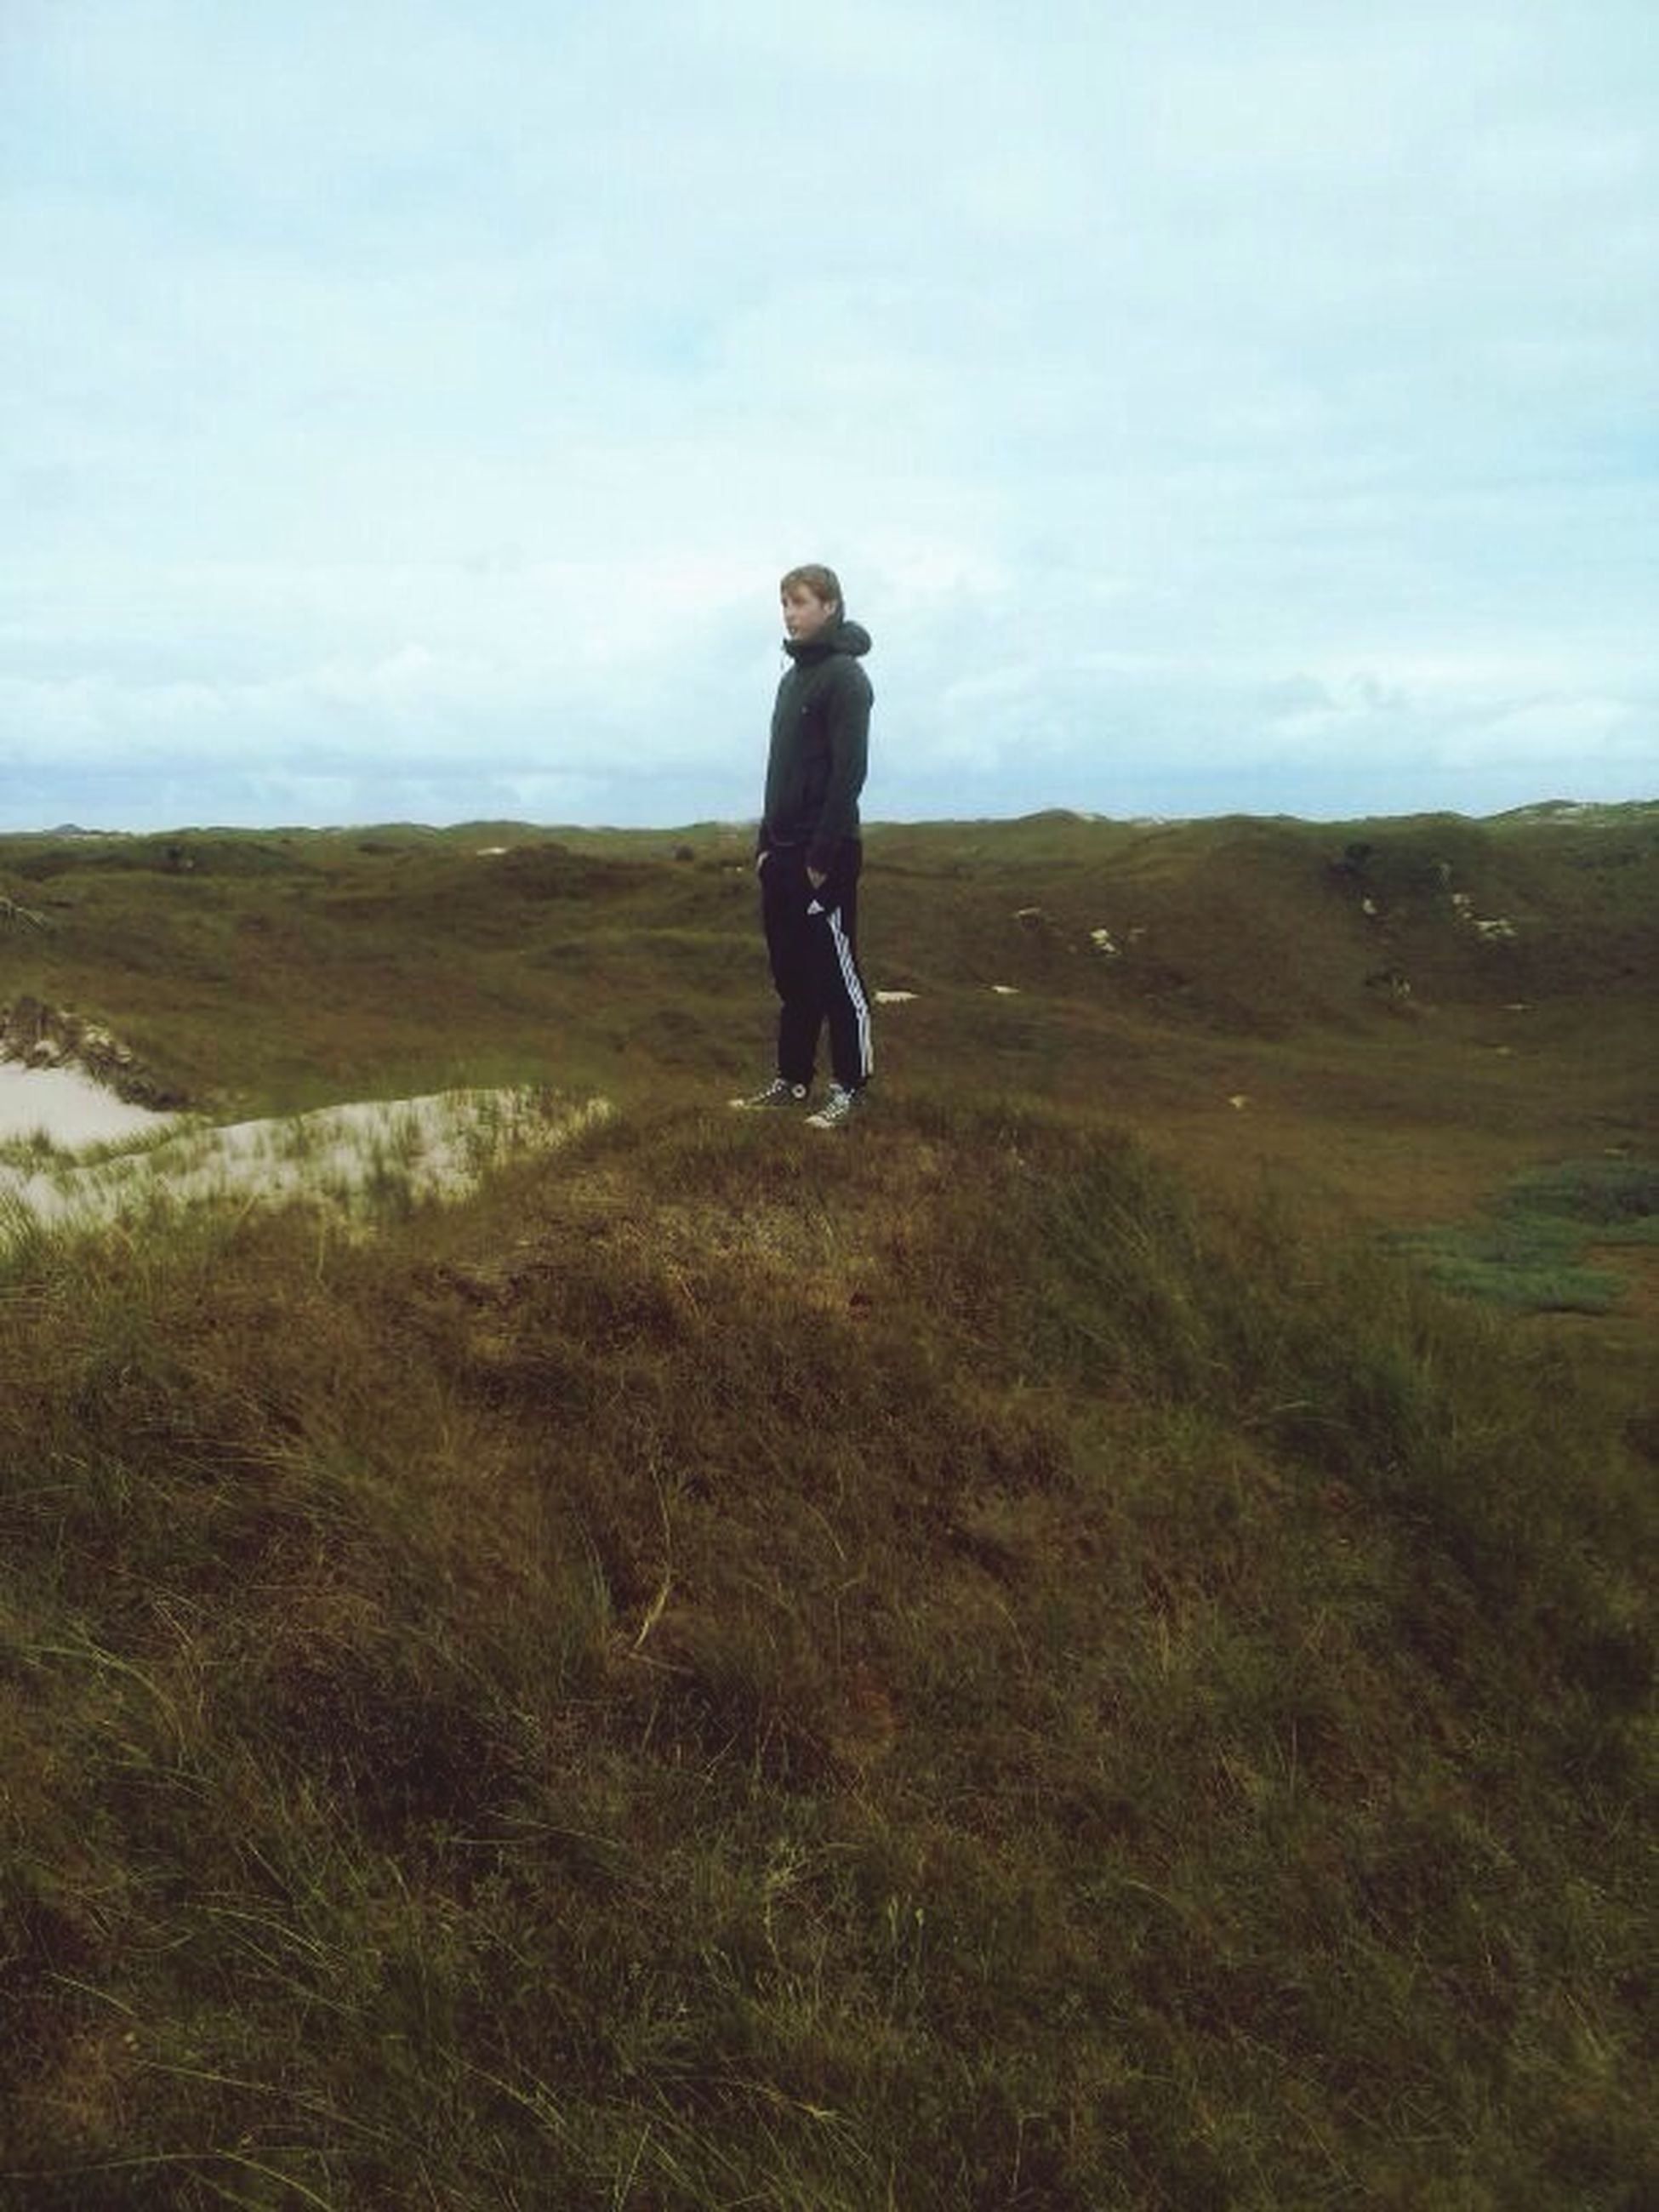 full length, lifestyles, casual clothing, leisure activity, landscape, sky, standing, young adult, rear view, tranquility, tranquil scene, nature, field, young men, scenics, getting away from it all, beauty in nature, horizon over land